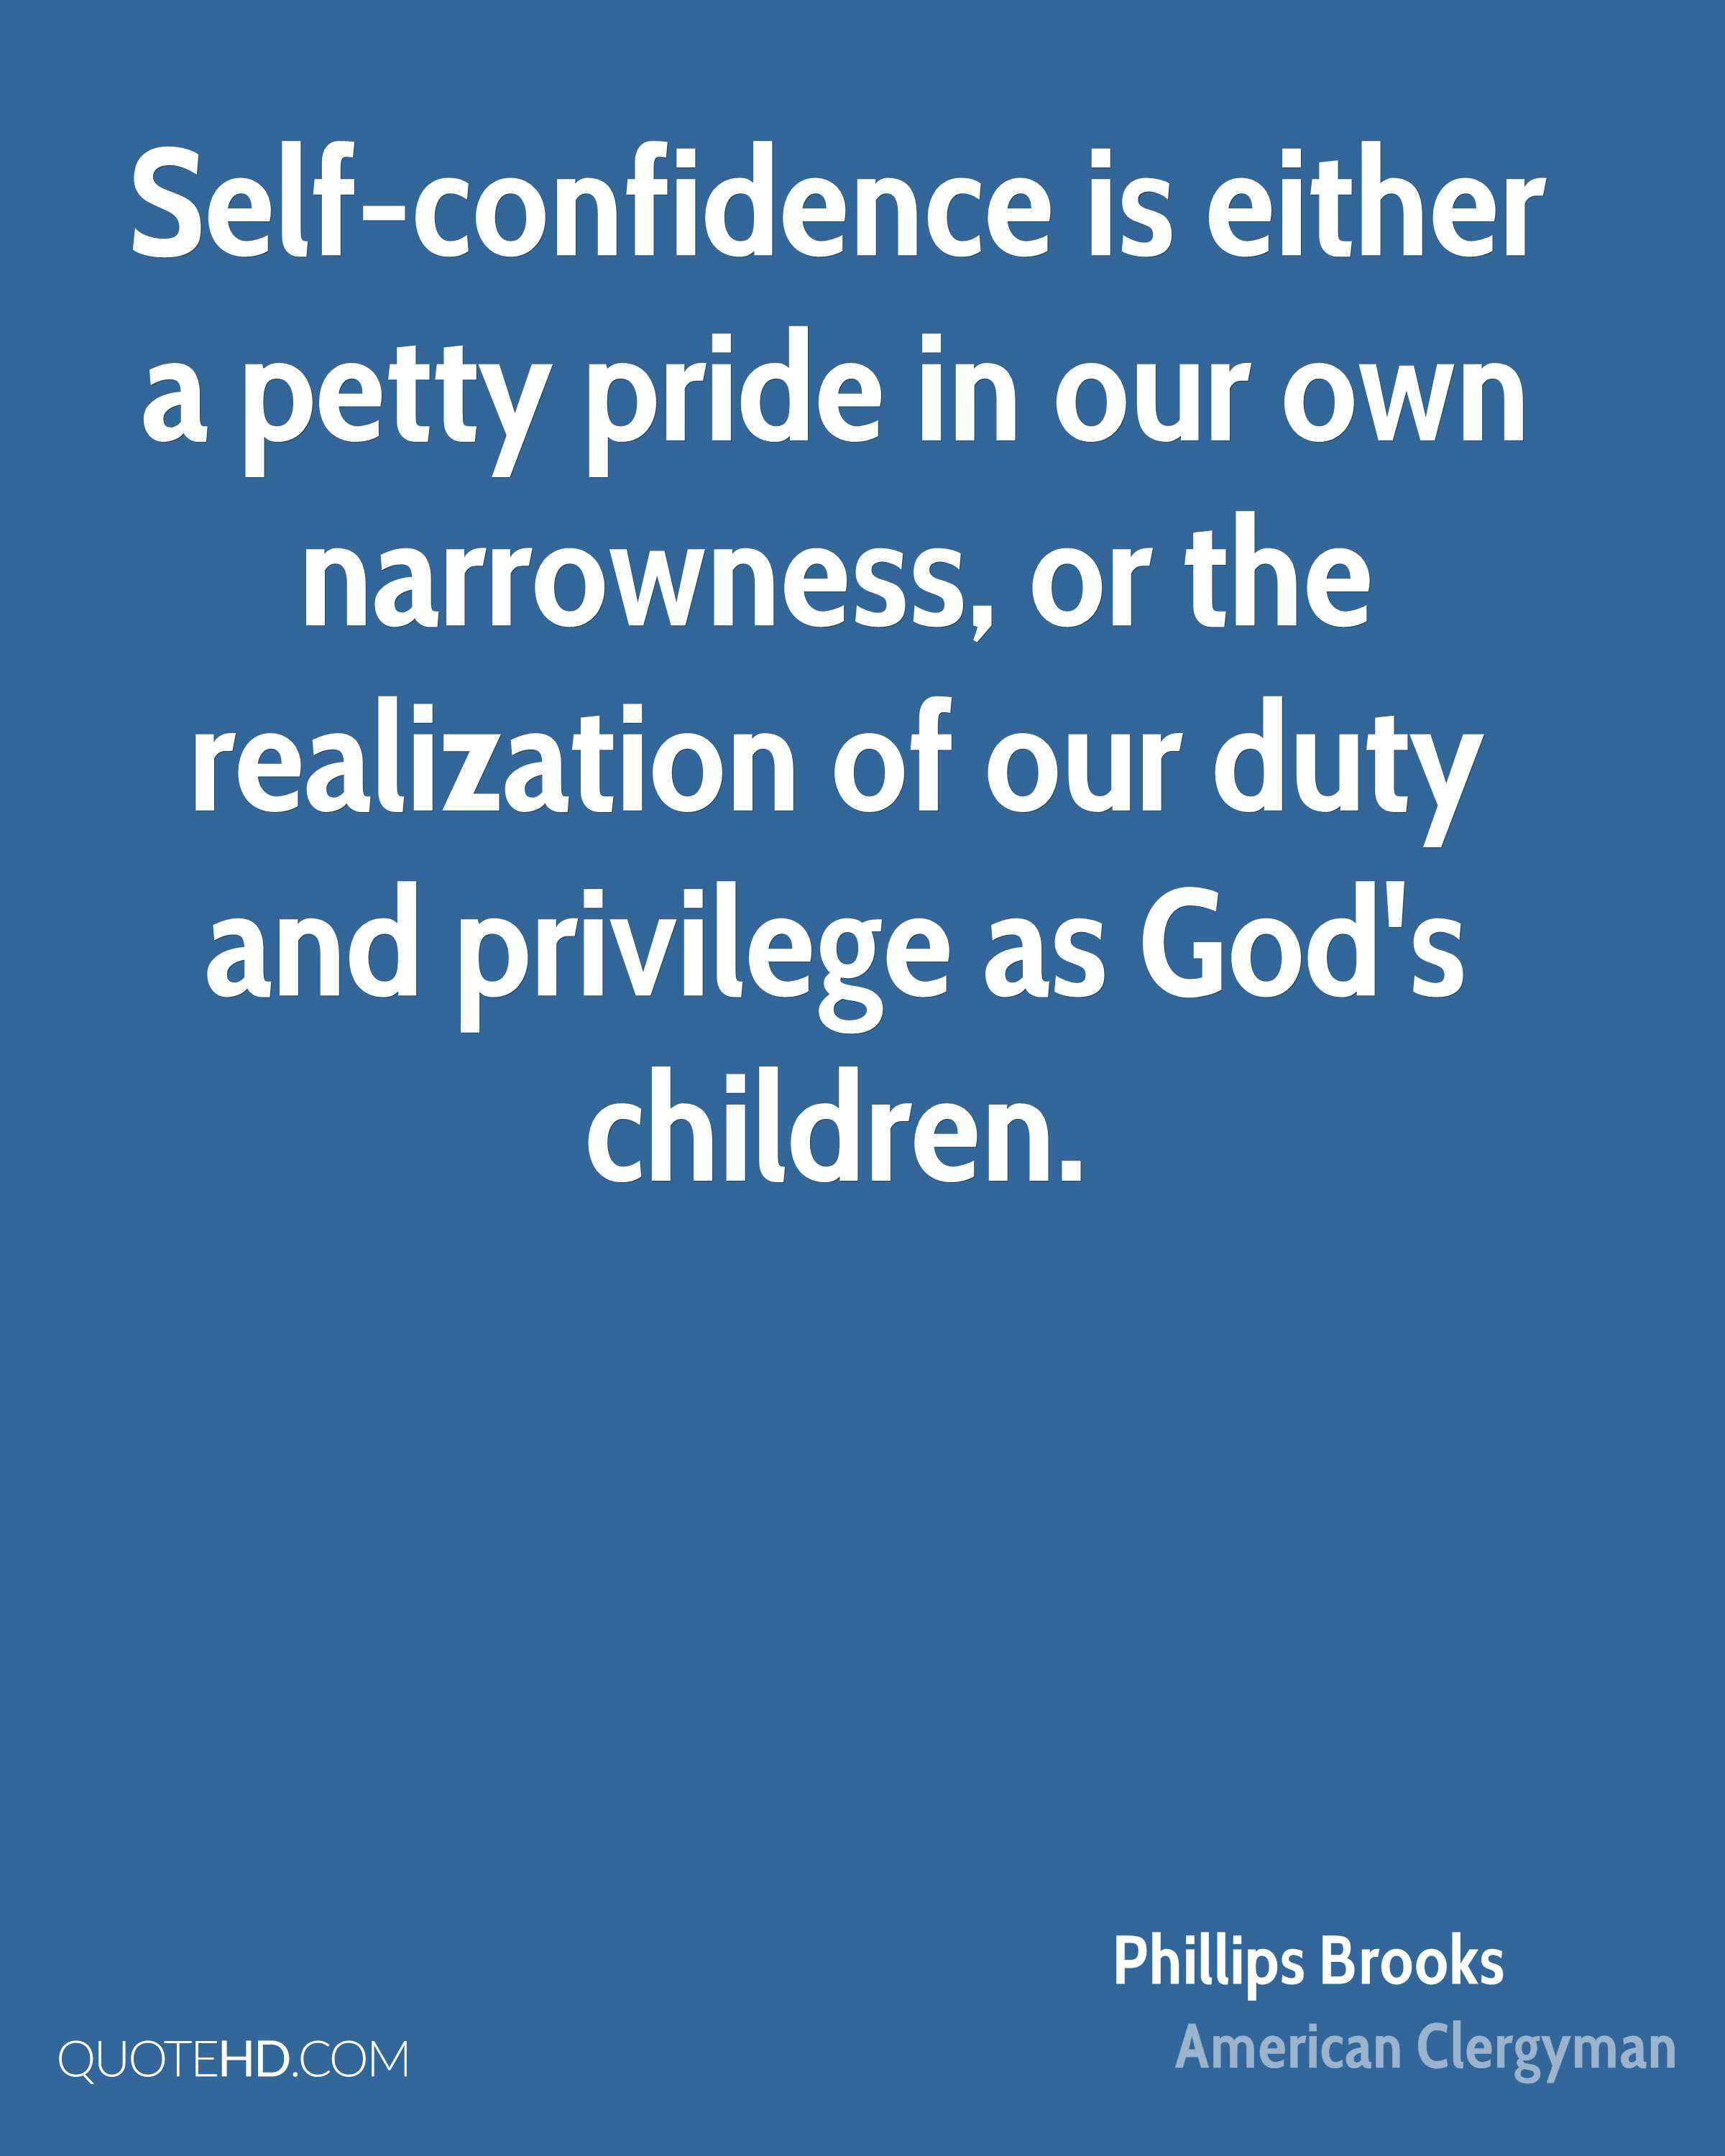 Self-confidence is either a petty pride in our own narrowness, or the realization of our duty and privilege as God's children.